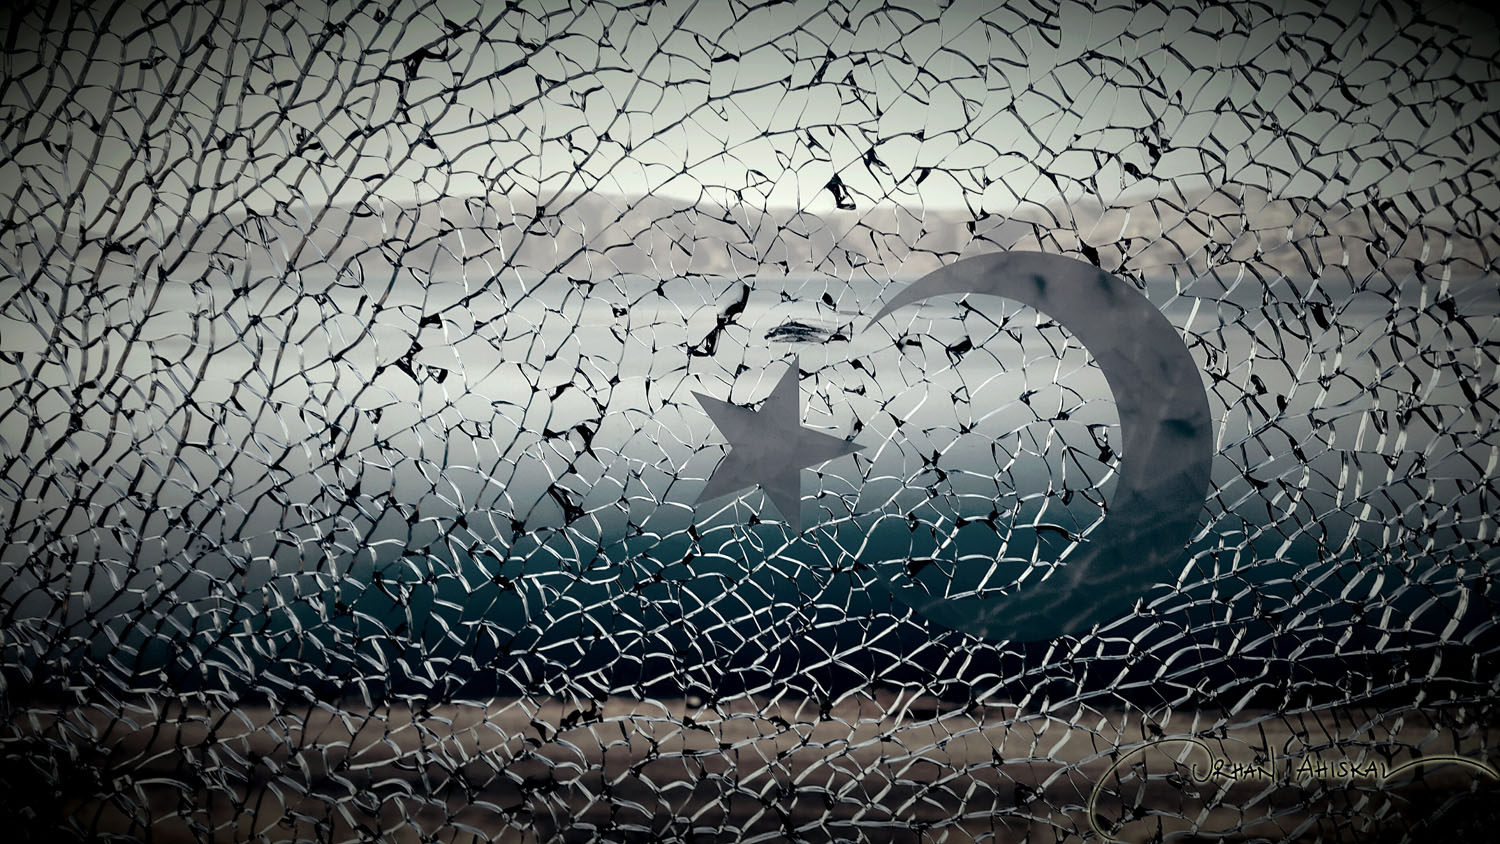 Train window shattered by a thrown rock. Photo: Orhan Ahıskal